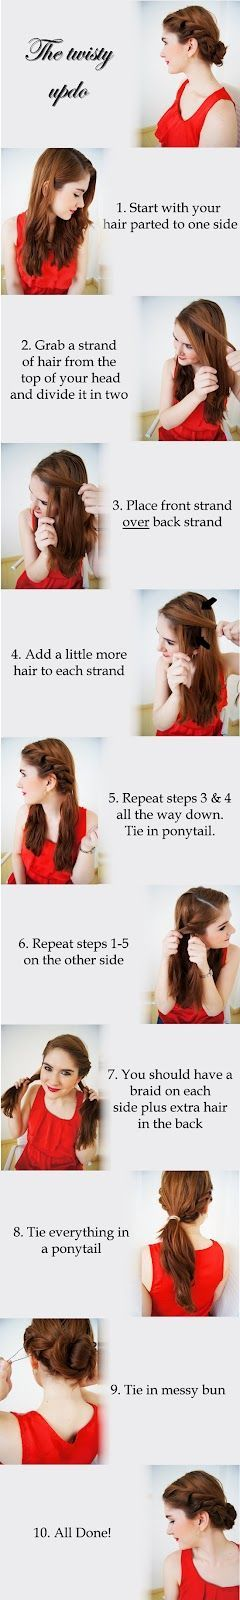 An adorable updo with how-to instructions. Tuck flowers into it when attending a special event, wear it on a hot day, or speed up the morning routine by not straightening or curling your hair! From The Joy of Fashion.